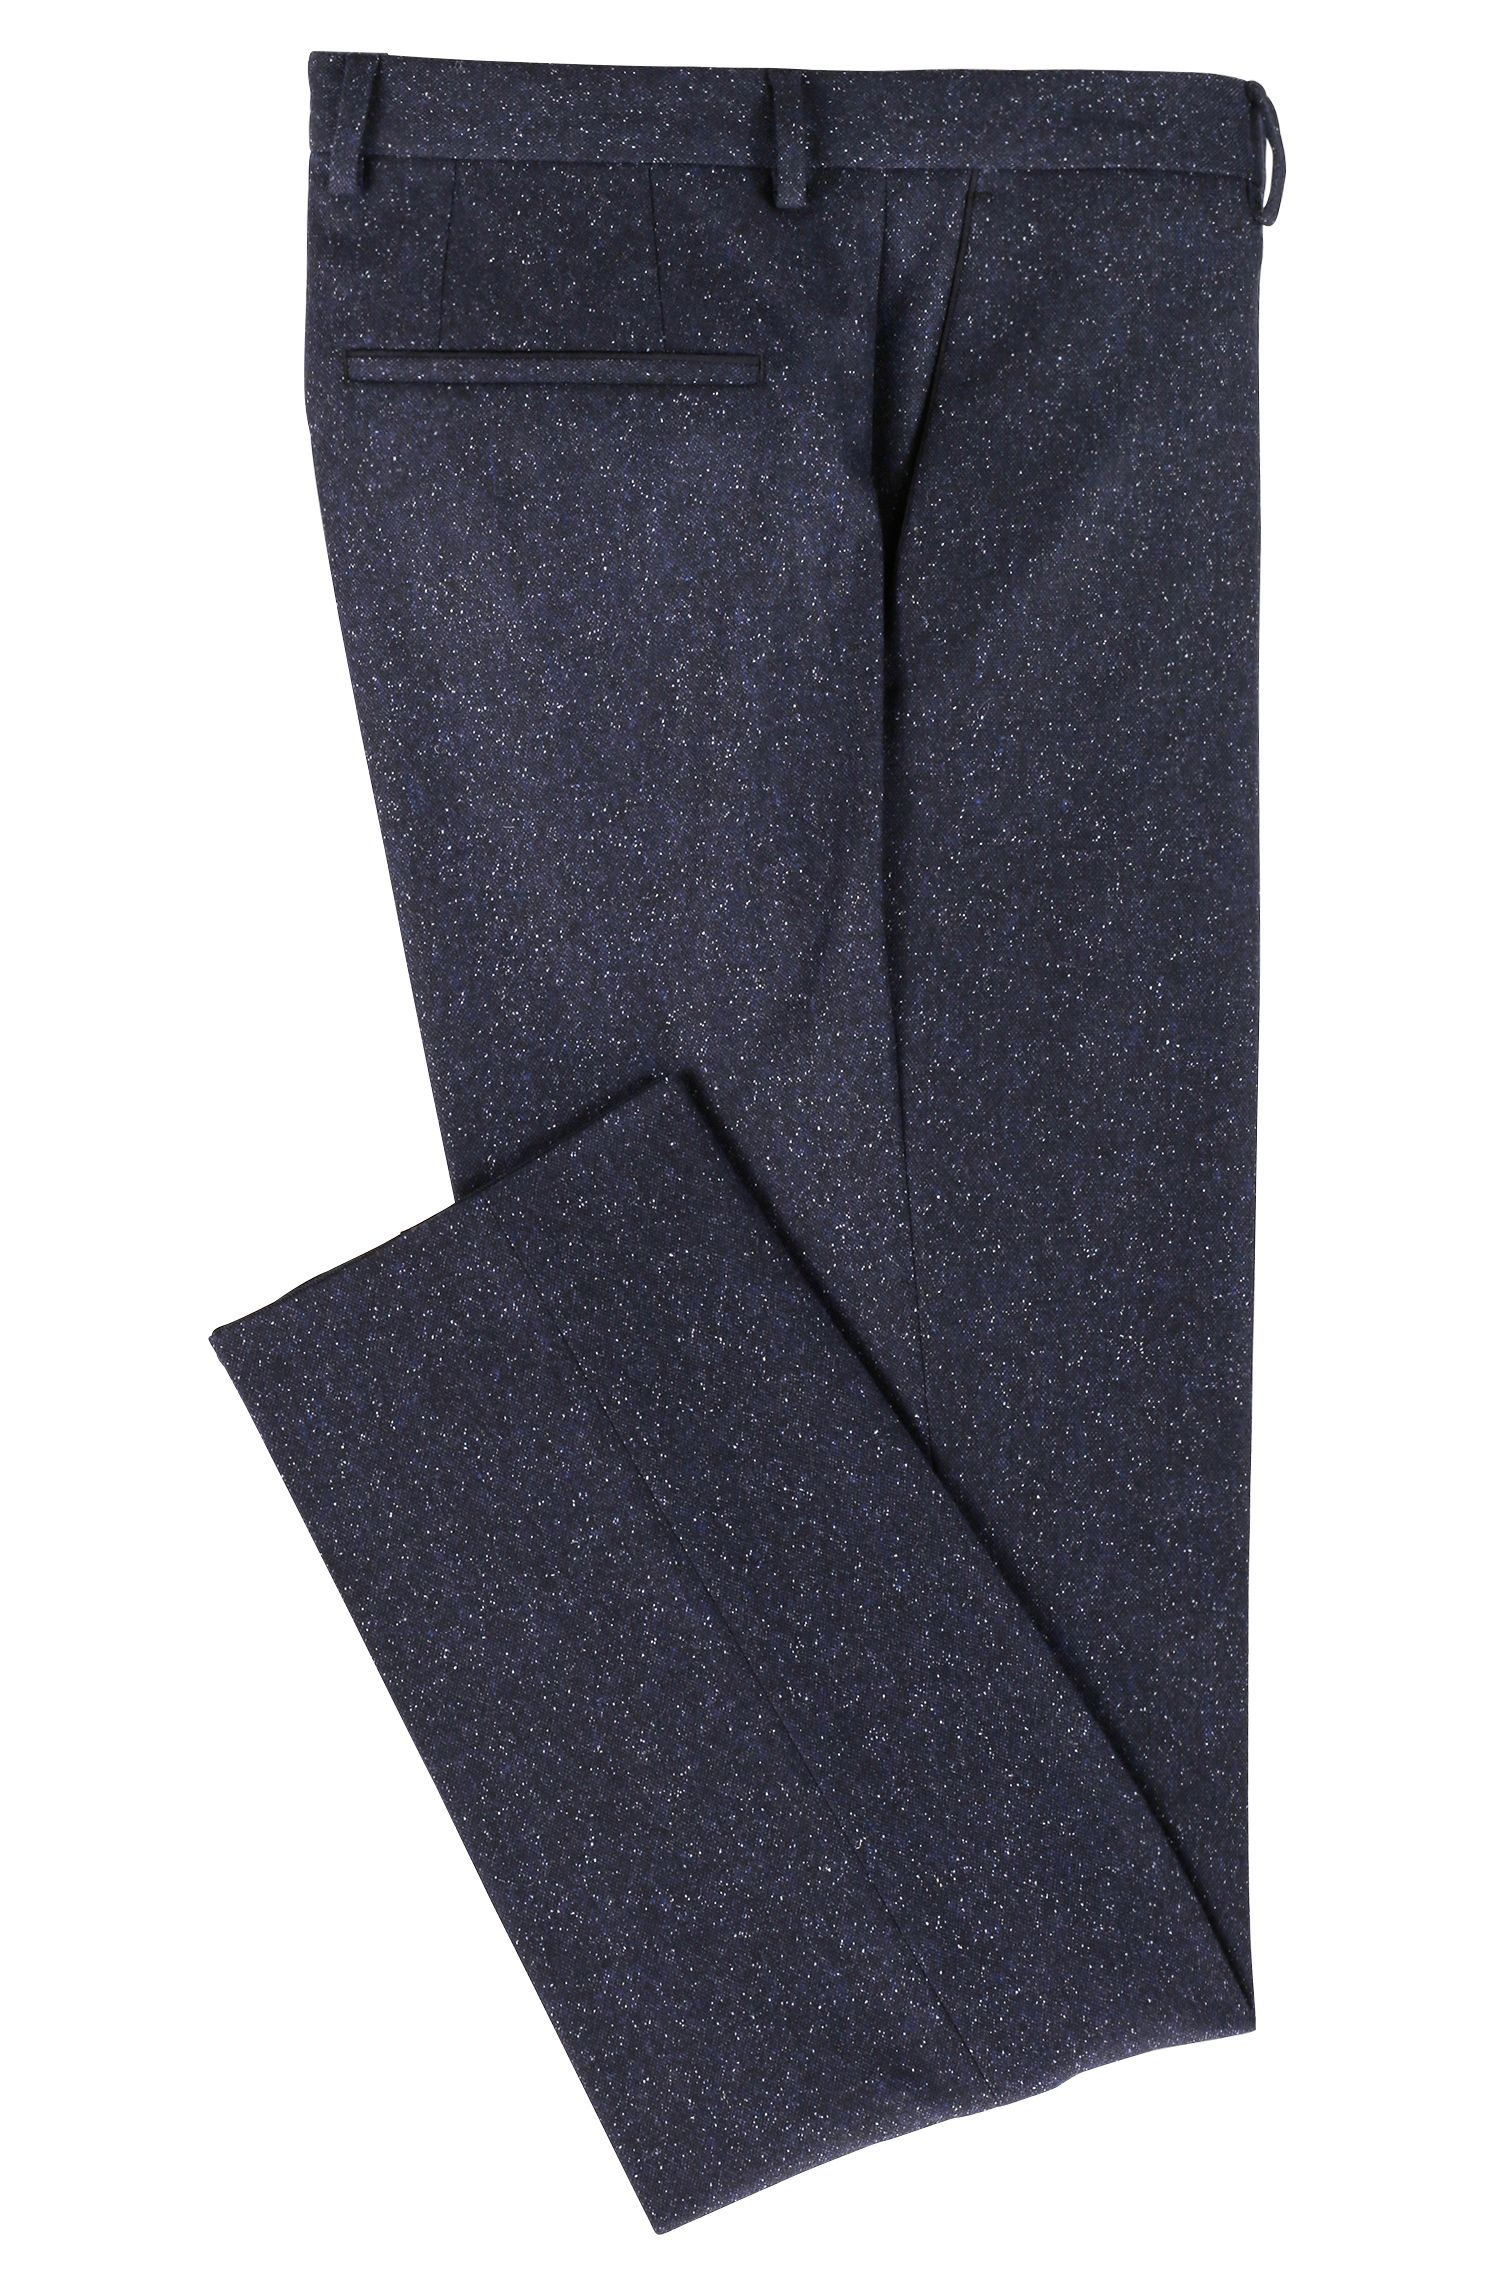 Pantaloni slim fit in tweed di misto lana vergine, Blu scuro